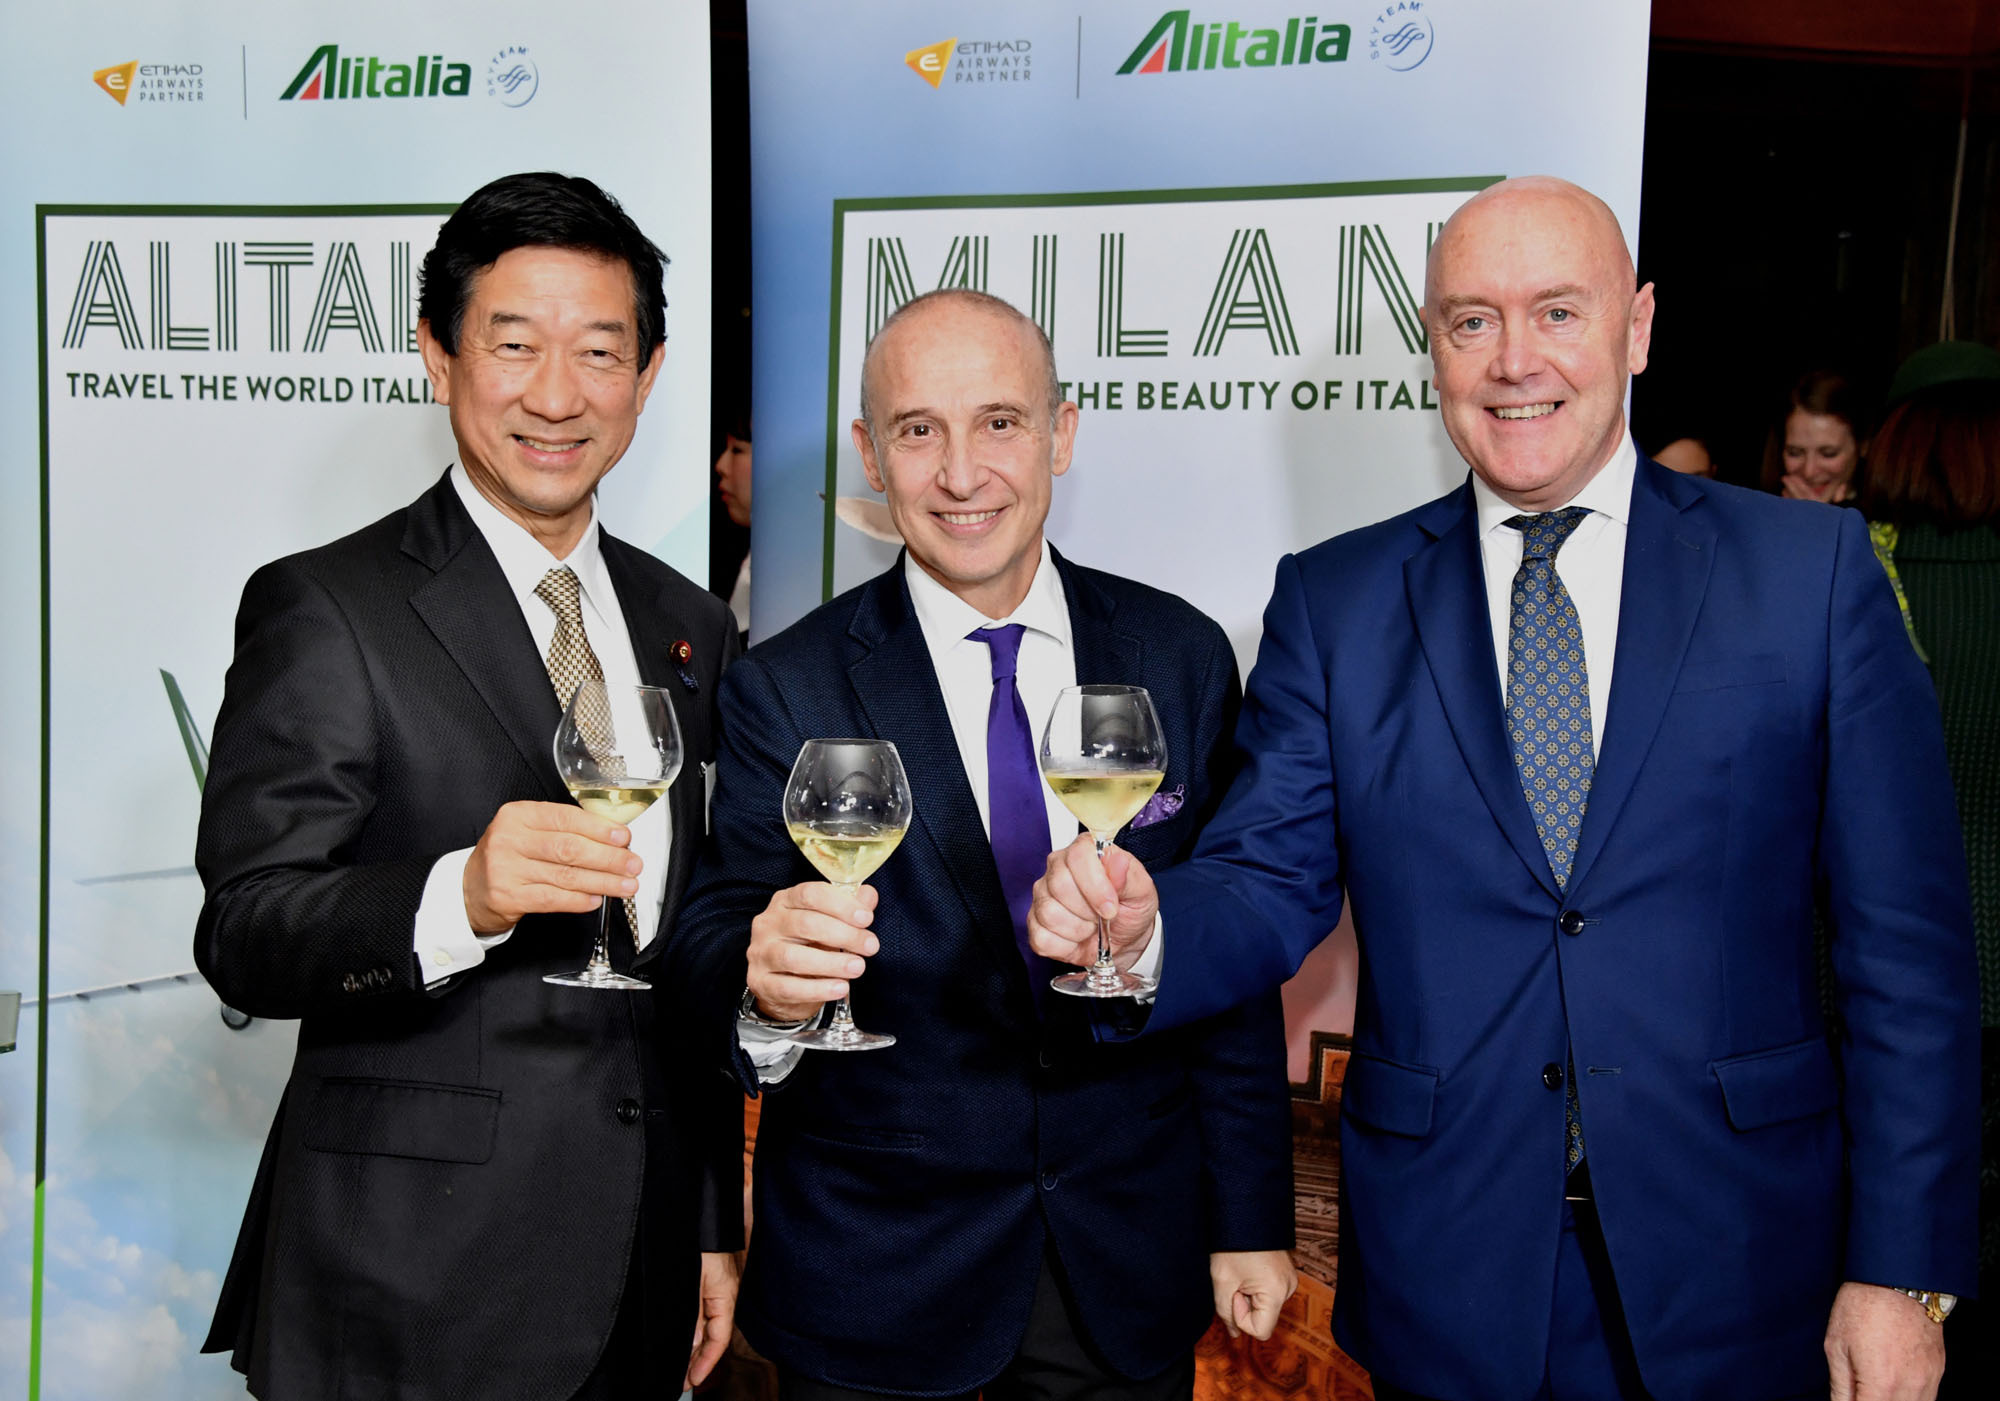 Alitalia Regional General Manager for Asia-Pacific Massimo Allegri (right) joins Italian Ambassador Giorgio Starace (center) and Lower House lawmaker Shintaro Ito during a reception to celebrate the 70th anniversary of the airline's first national flight at the Italian ambassador's residence in Tokyo on Tuesday. |  YOSHIAKI MIURA